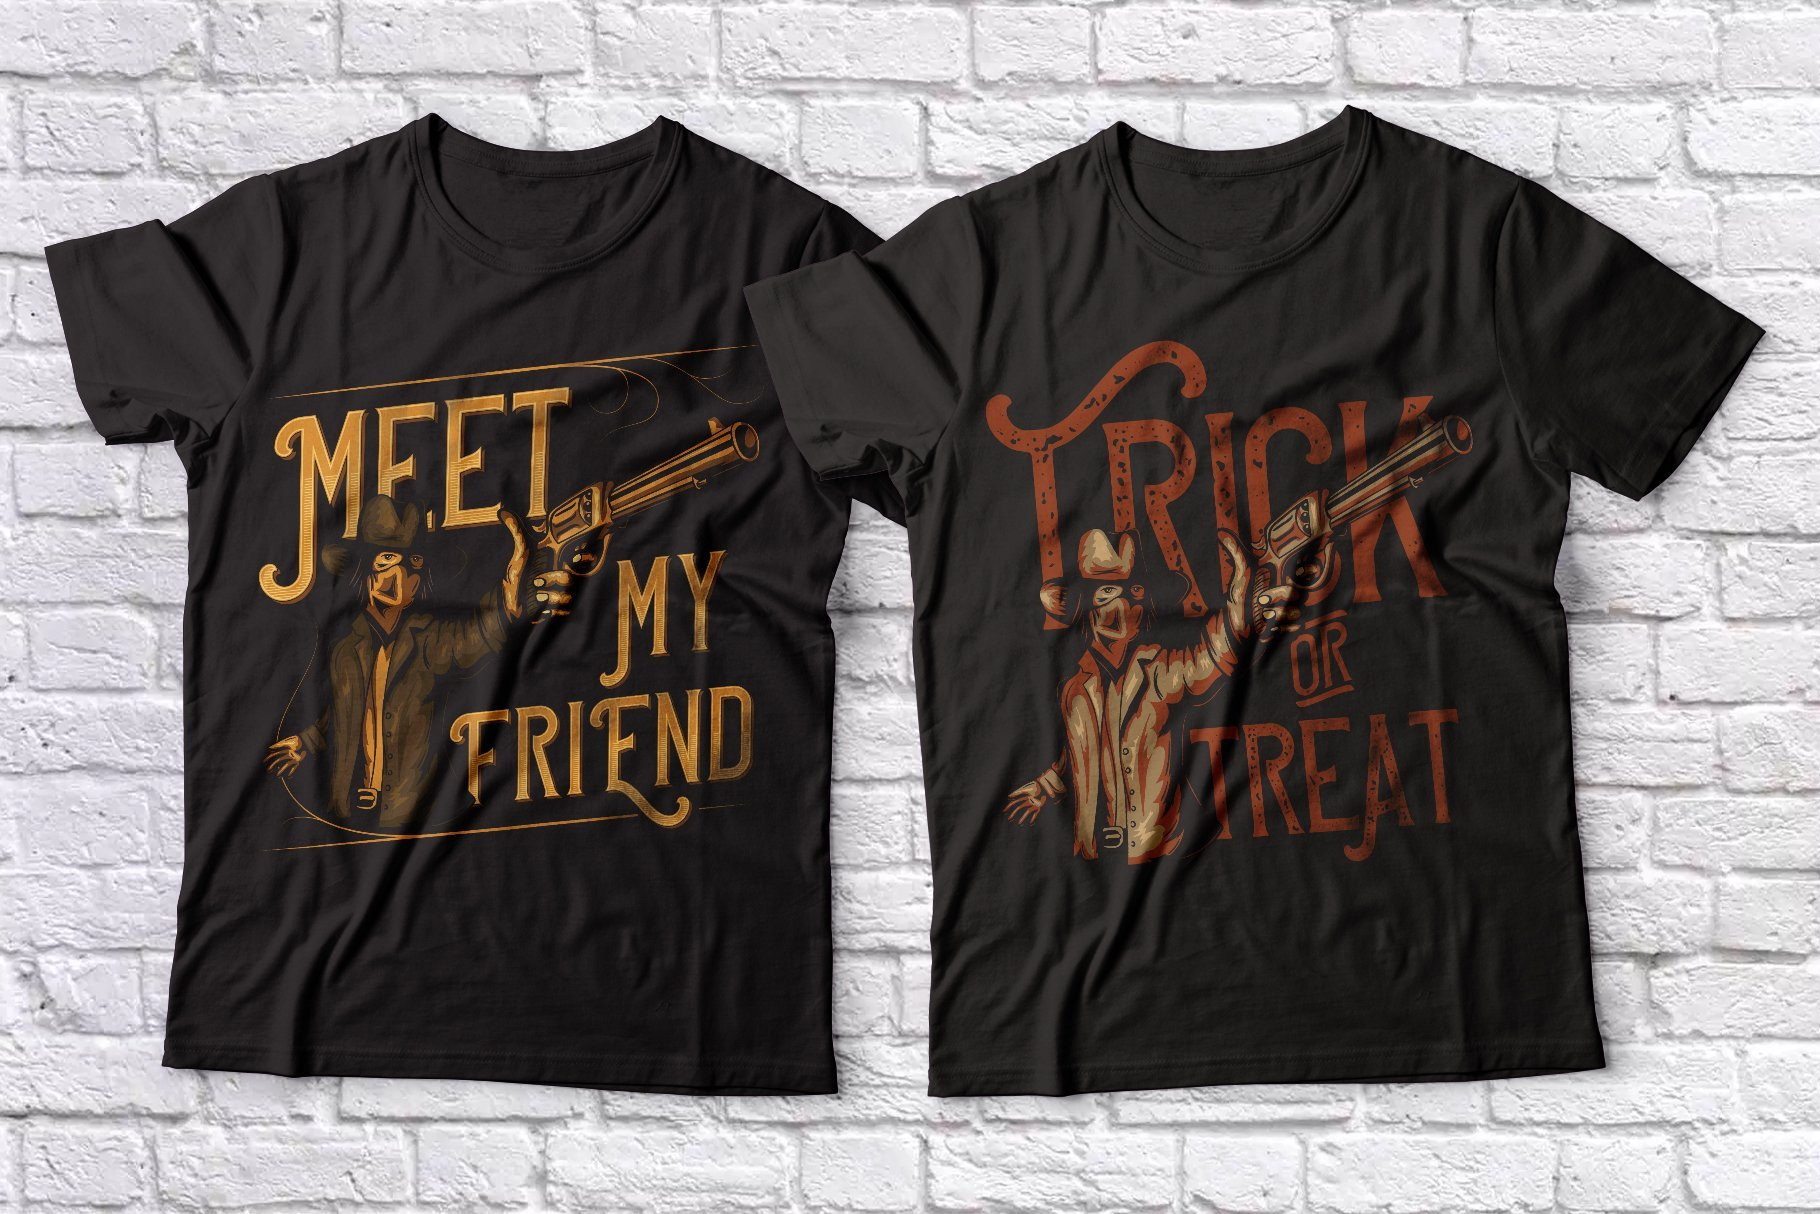 Two dark T-shirts with themed graphics and type.